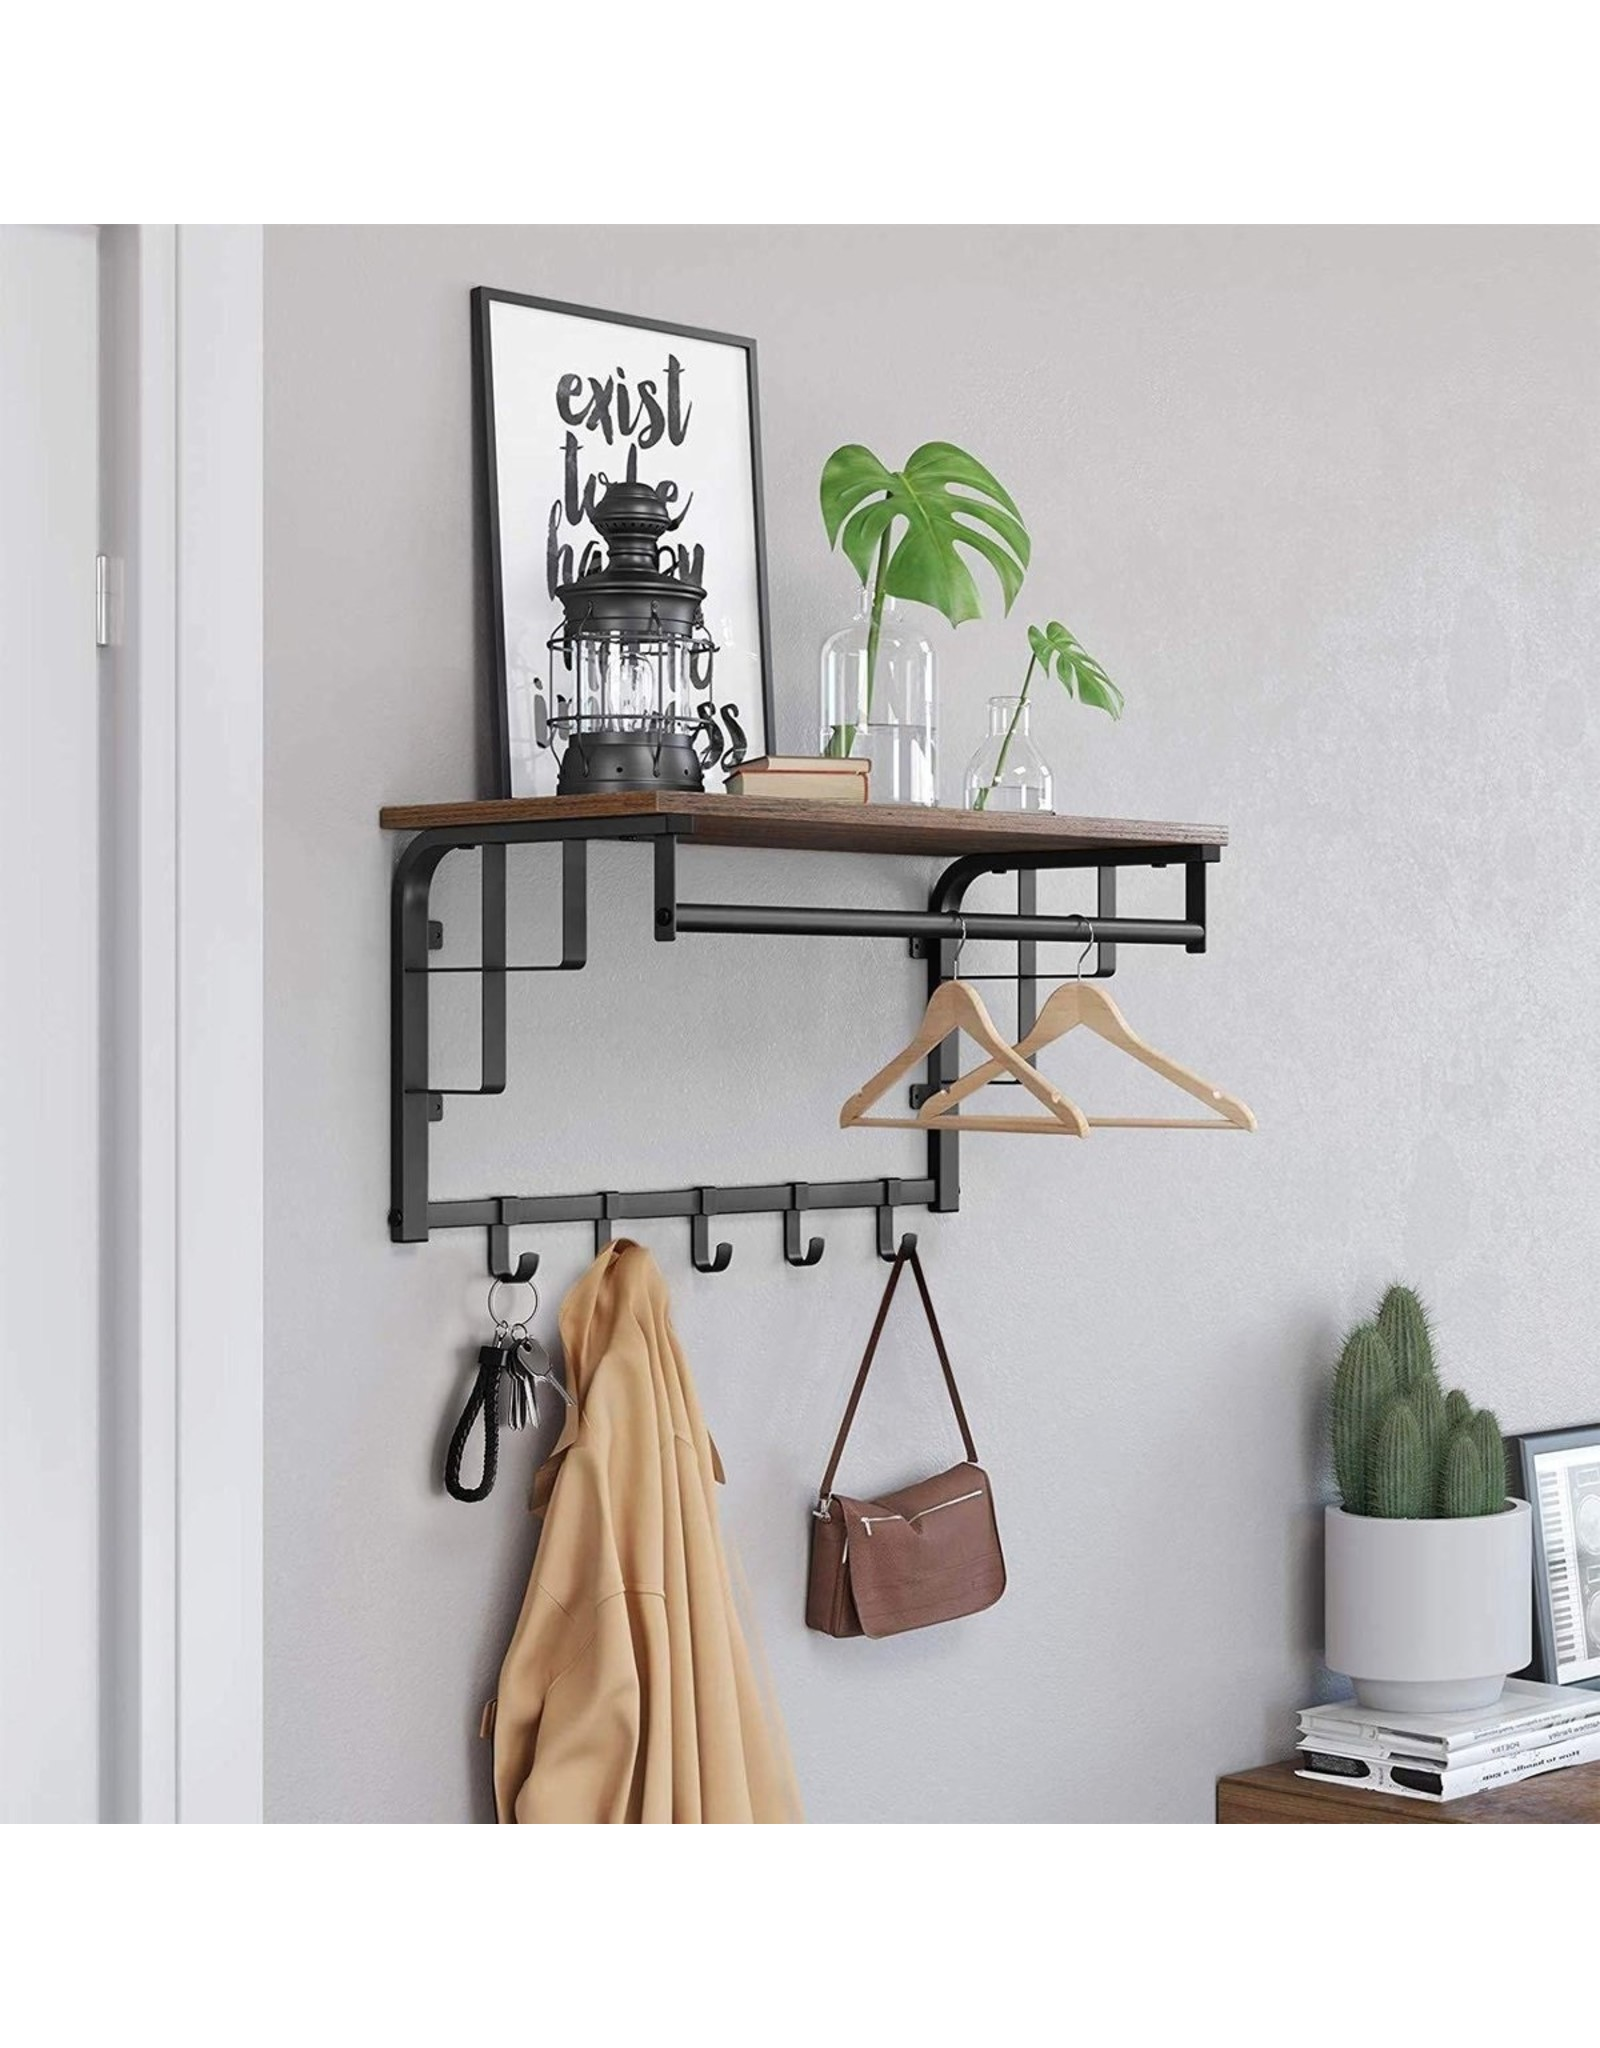 Vintage Wall Coatrack - With 5 Hooks